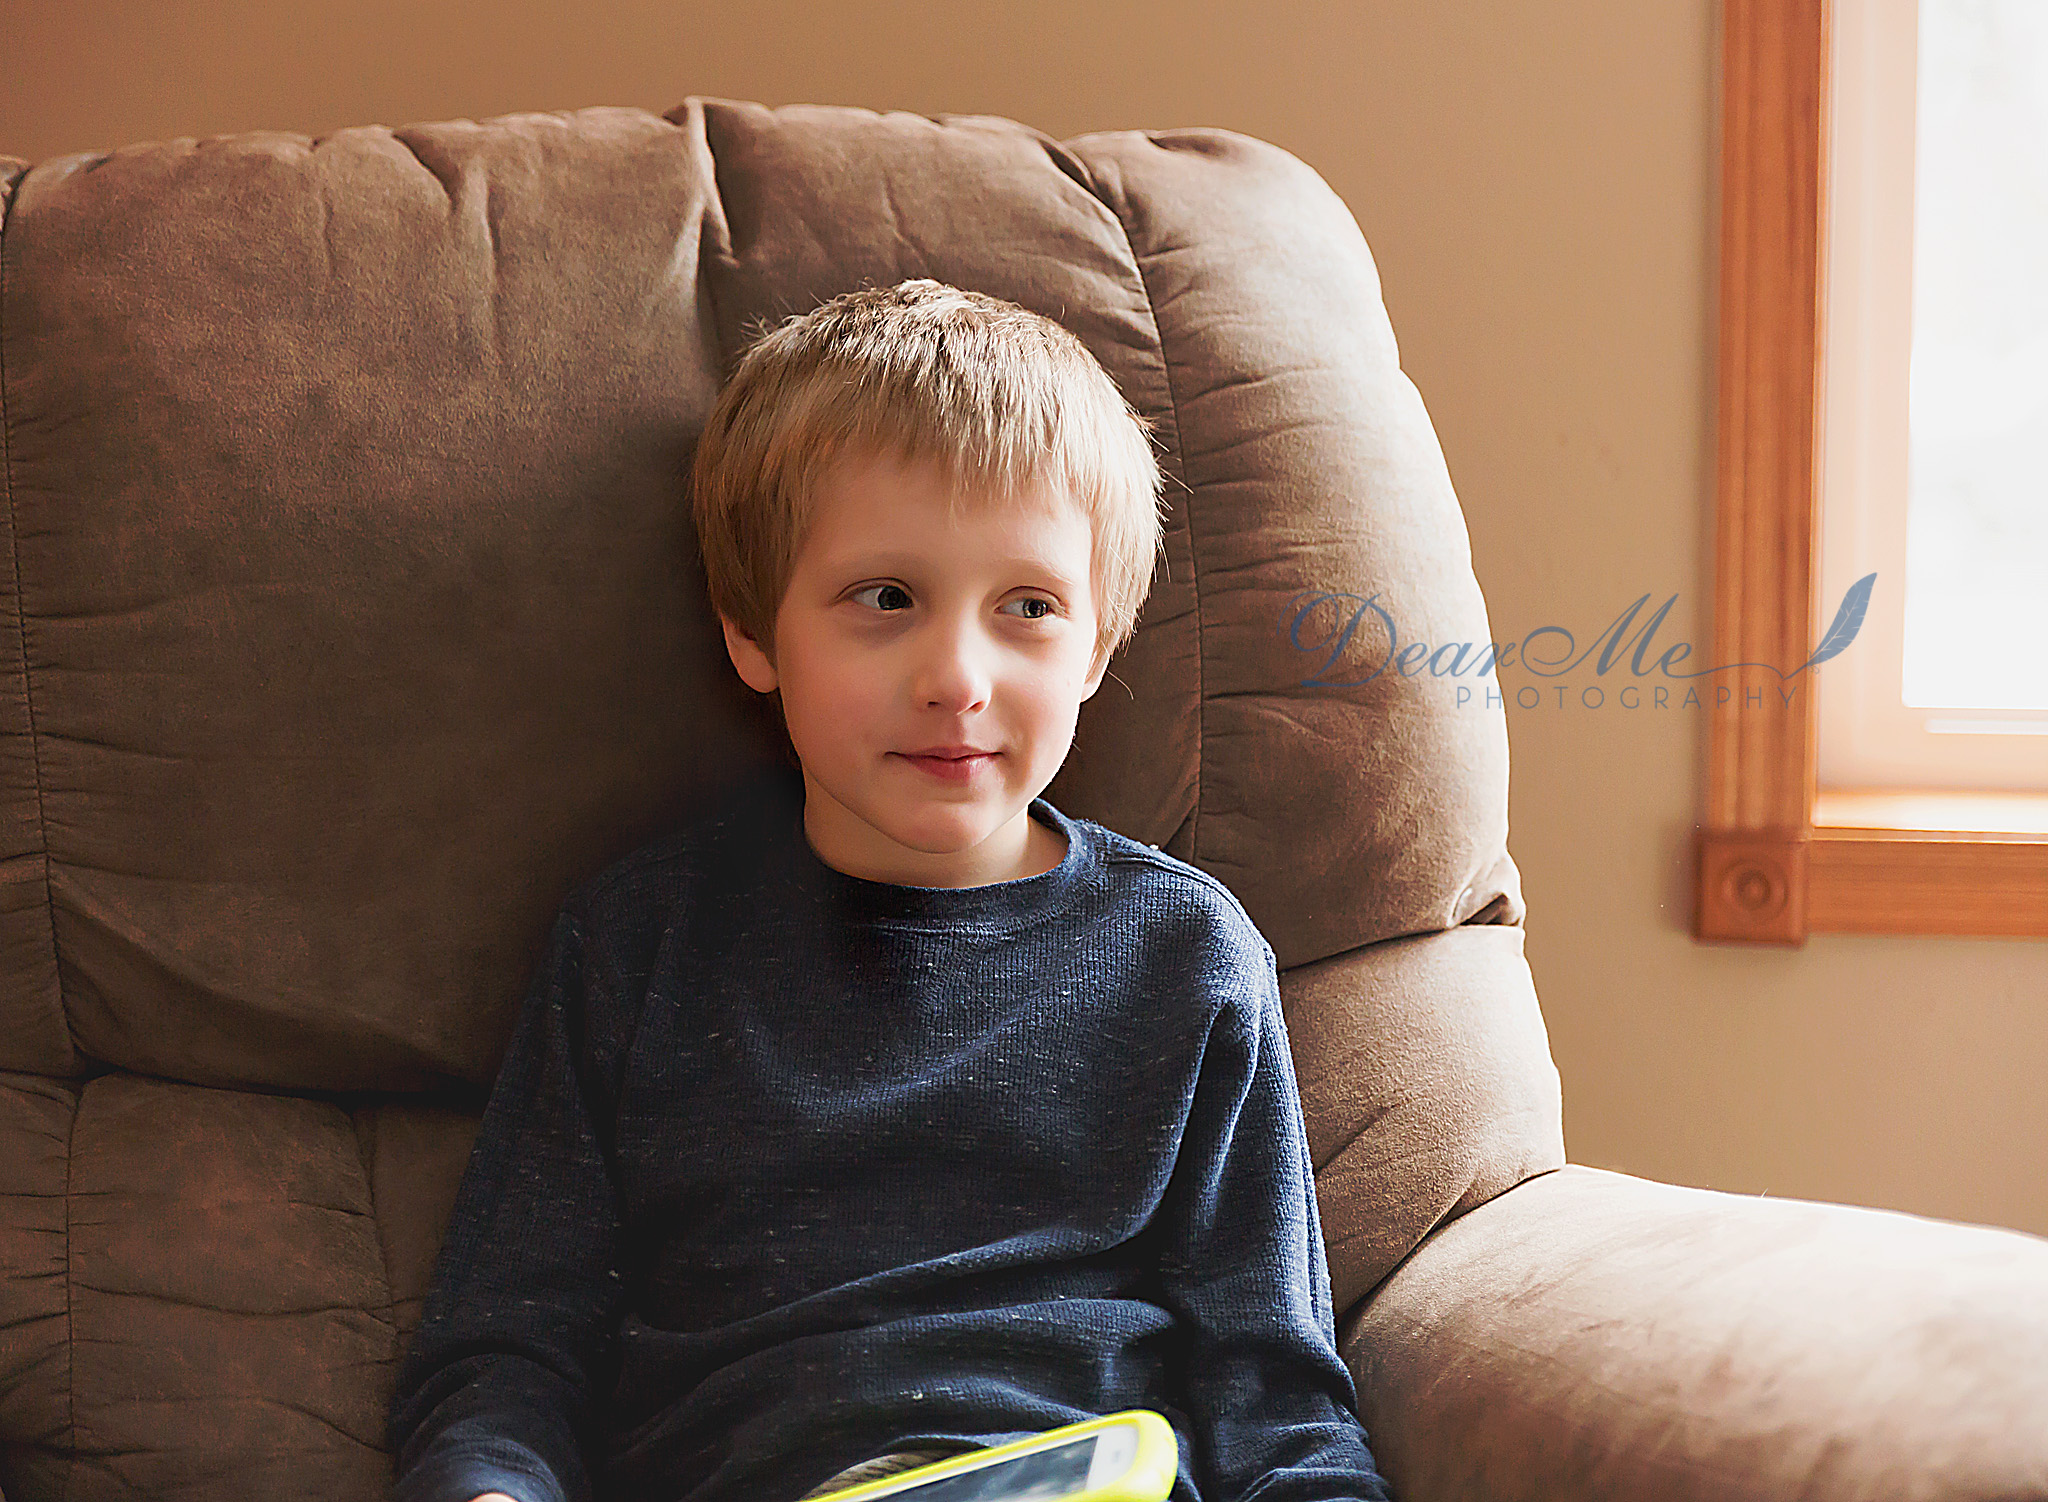 dear me photography mandan photographer boy sittingy on chair looking away from camera